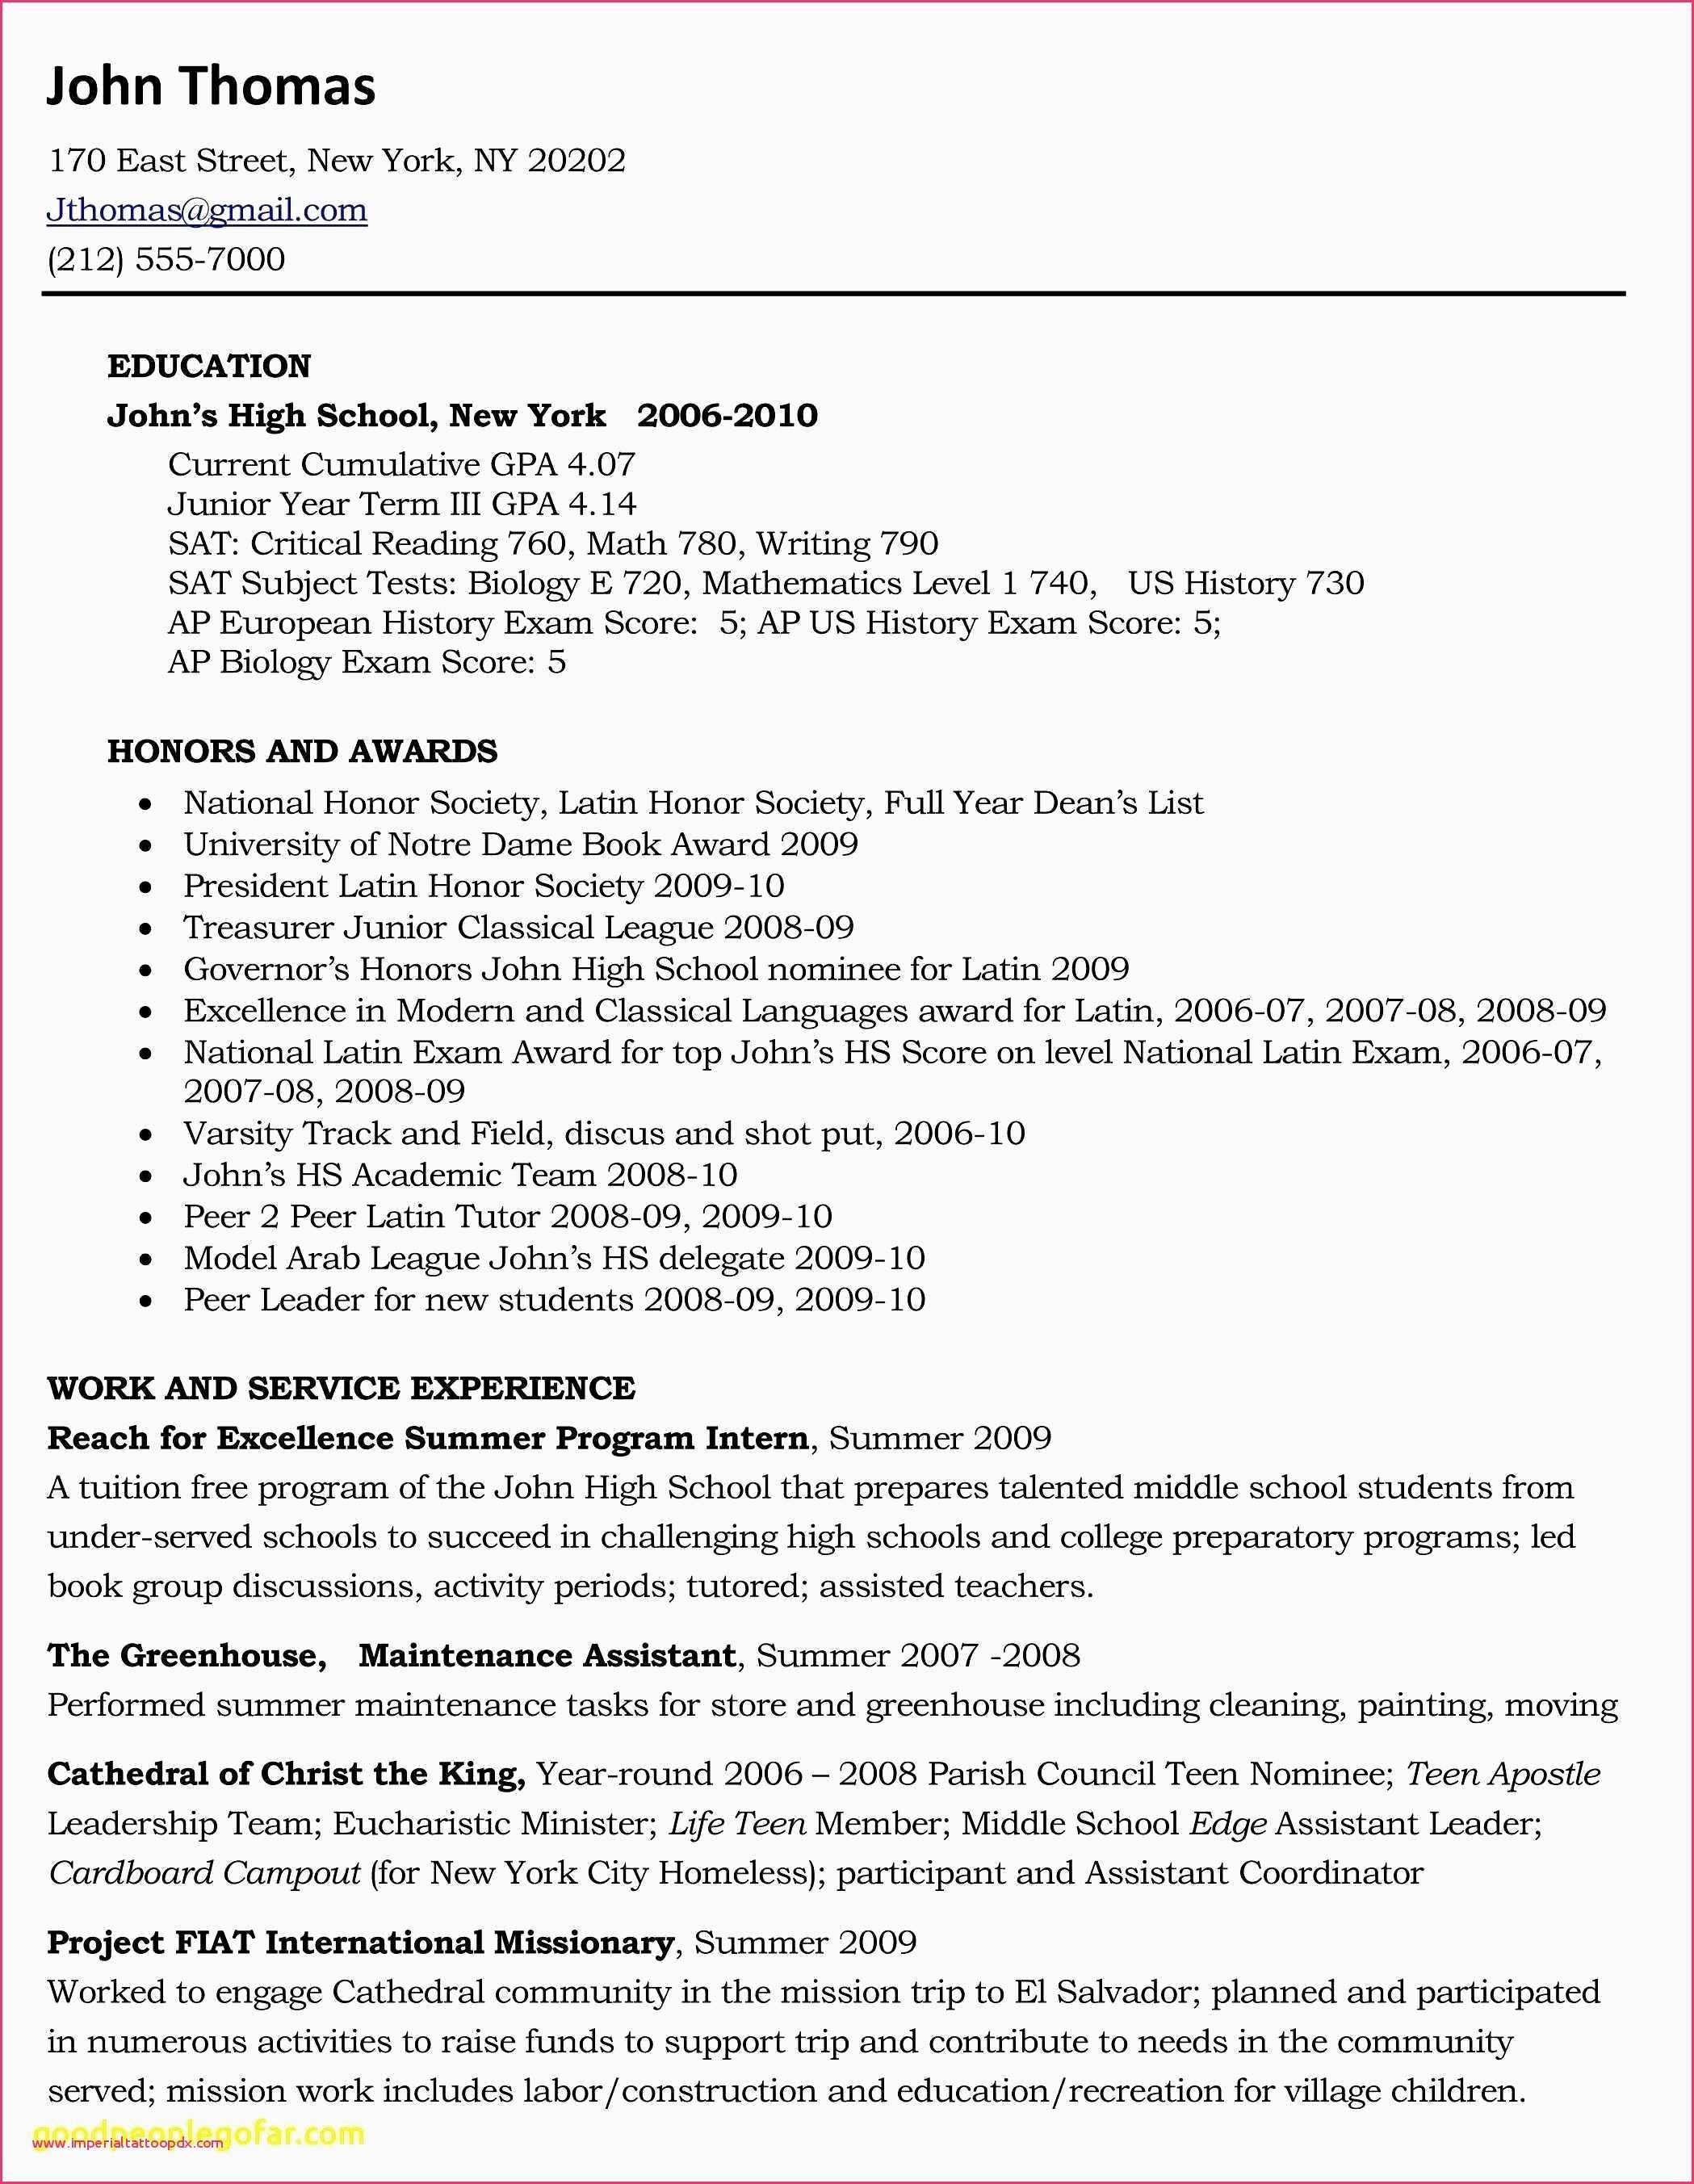 College Resume for High School Seniors - Sample College Resume High School Senior New Resume Example for